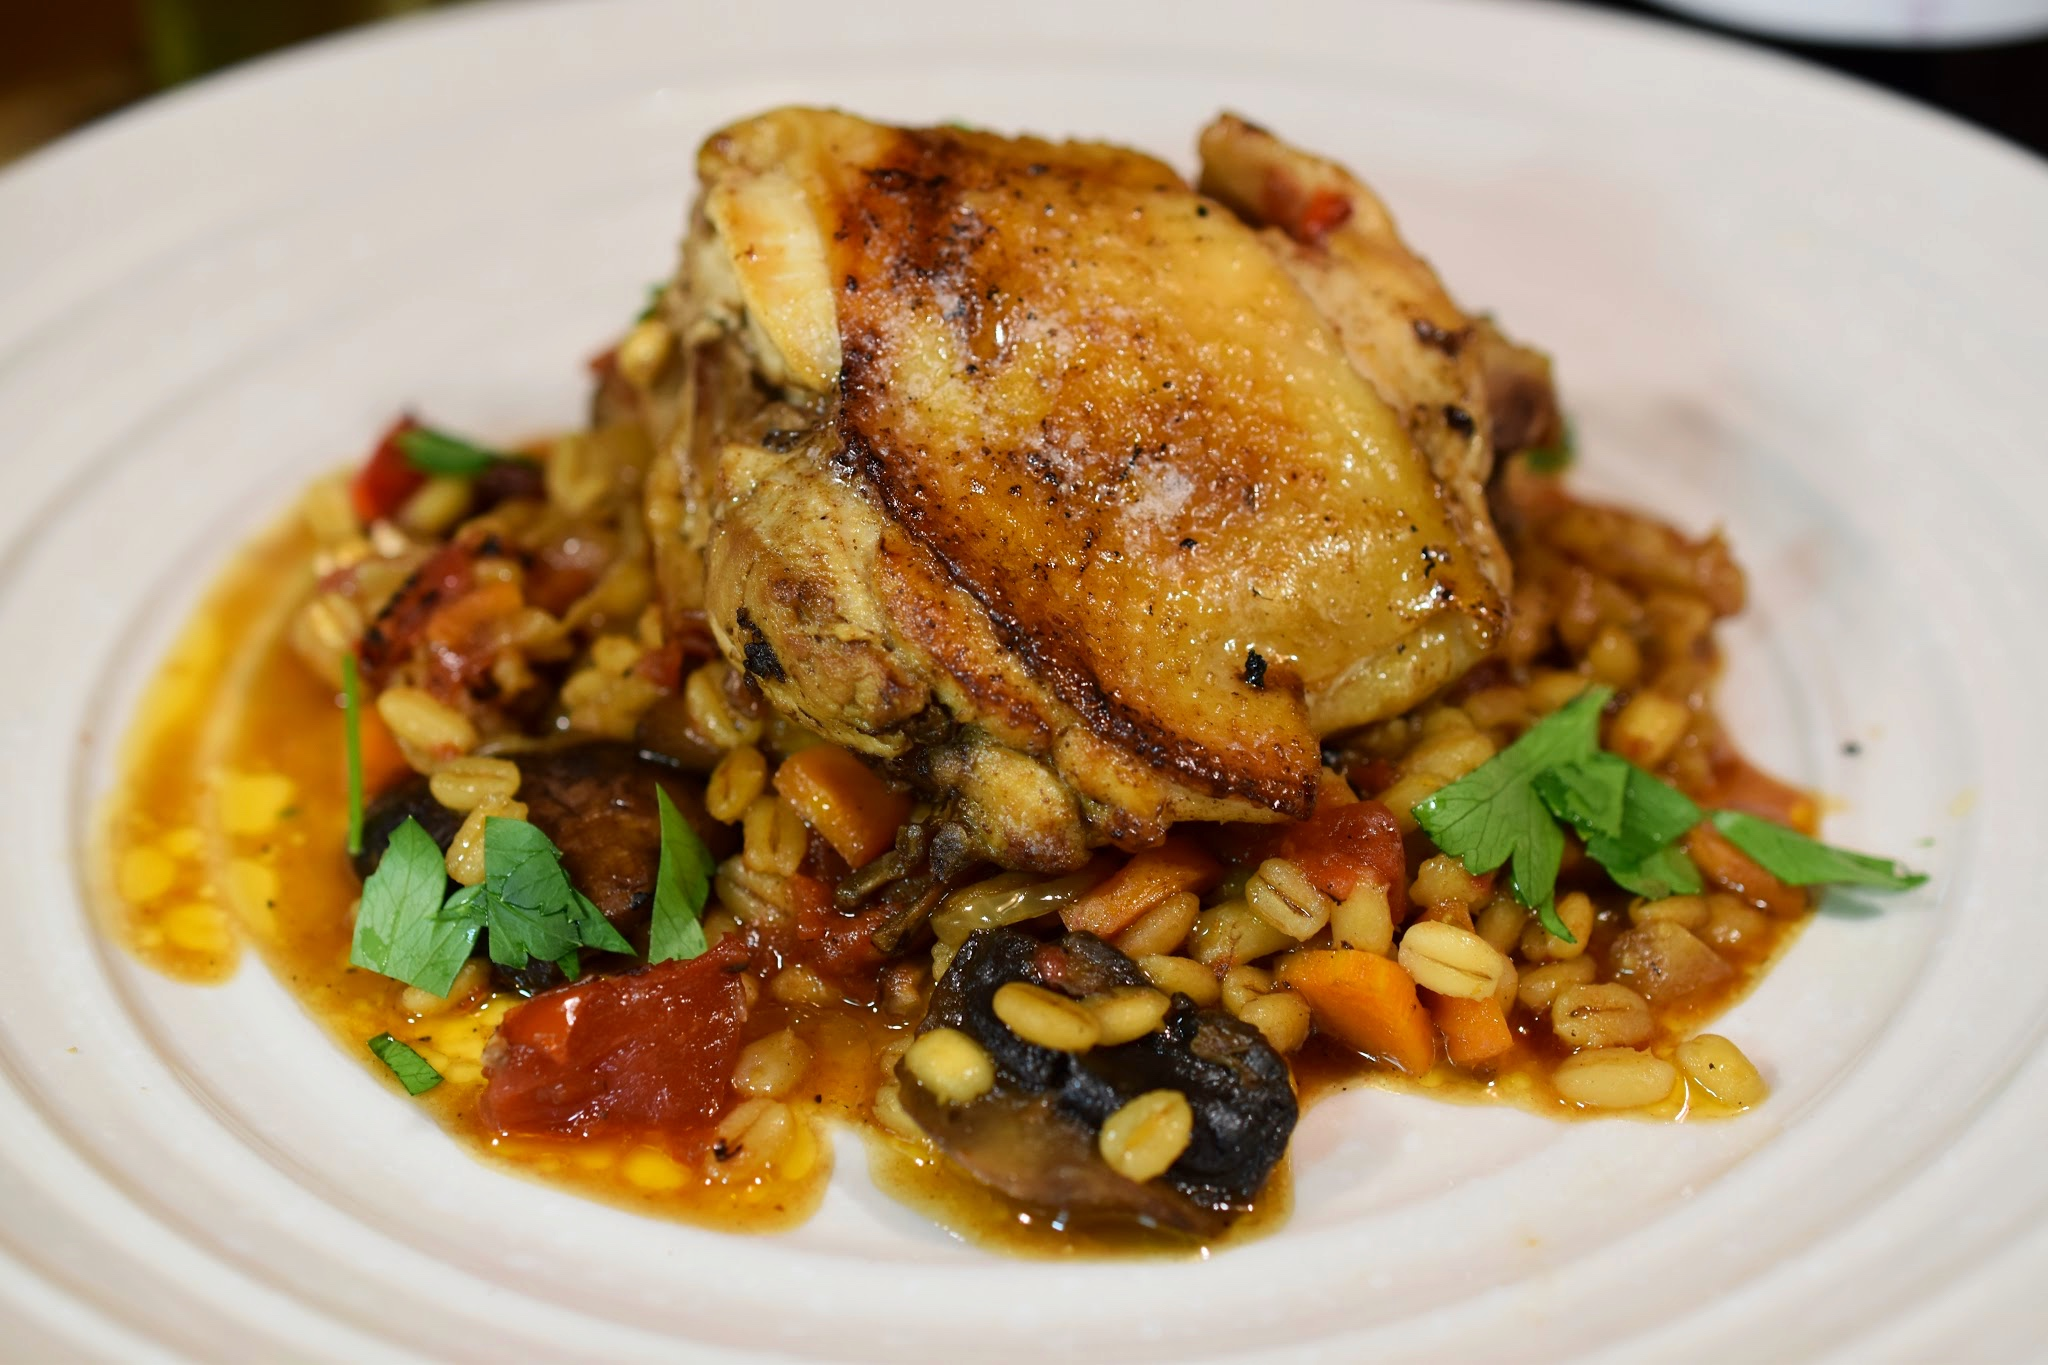 Oven-Baked Pearl Barley Pilaf with Chicken and Mushrooms